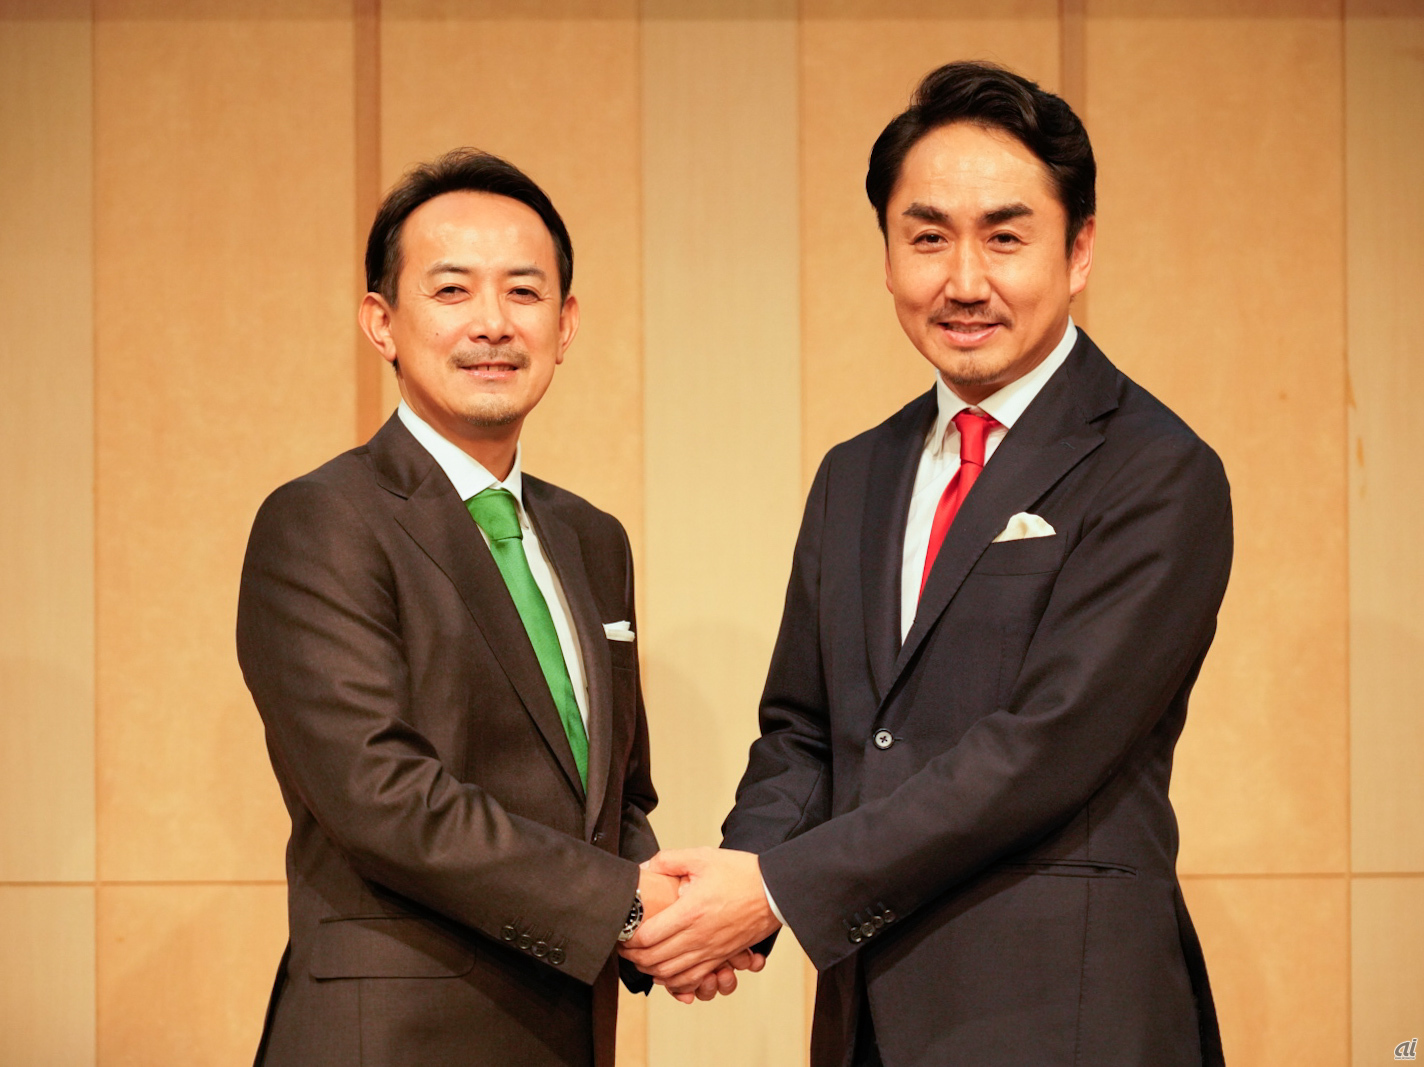 [From left] Kentaro Kawabe, currently President and CEO of New Holdings and Co-CEO of Shinsei Z Holdings, and Tsuyoshi Desawa, currently CEO of LINE and CEO of Z Holdings. [Taken on November 18]